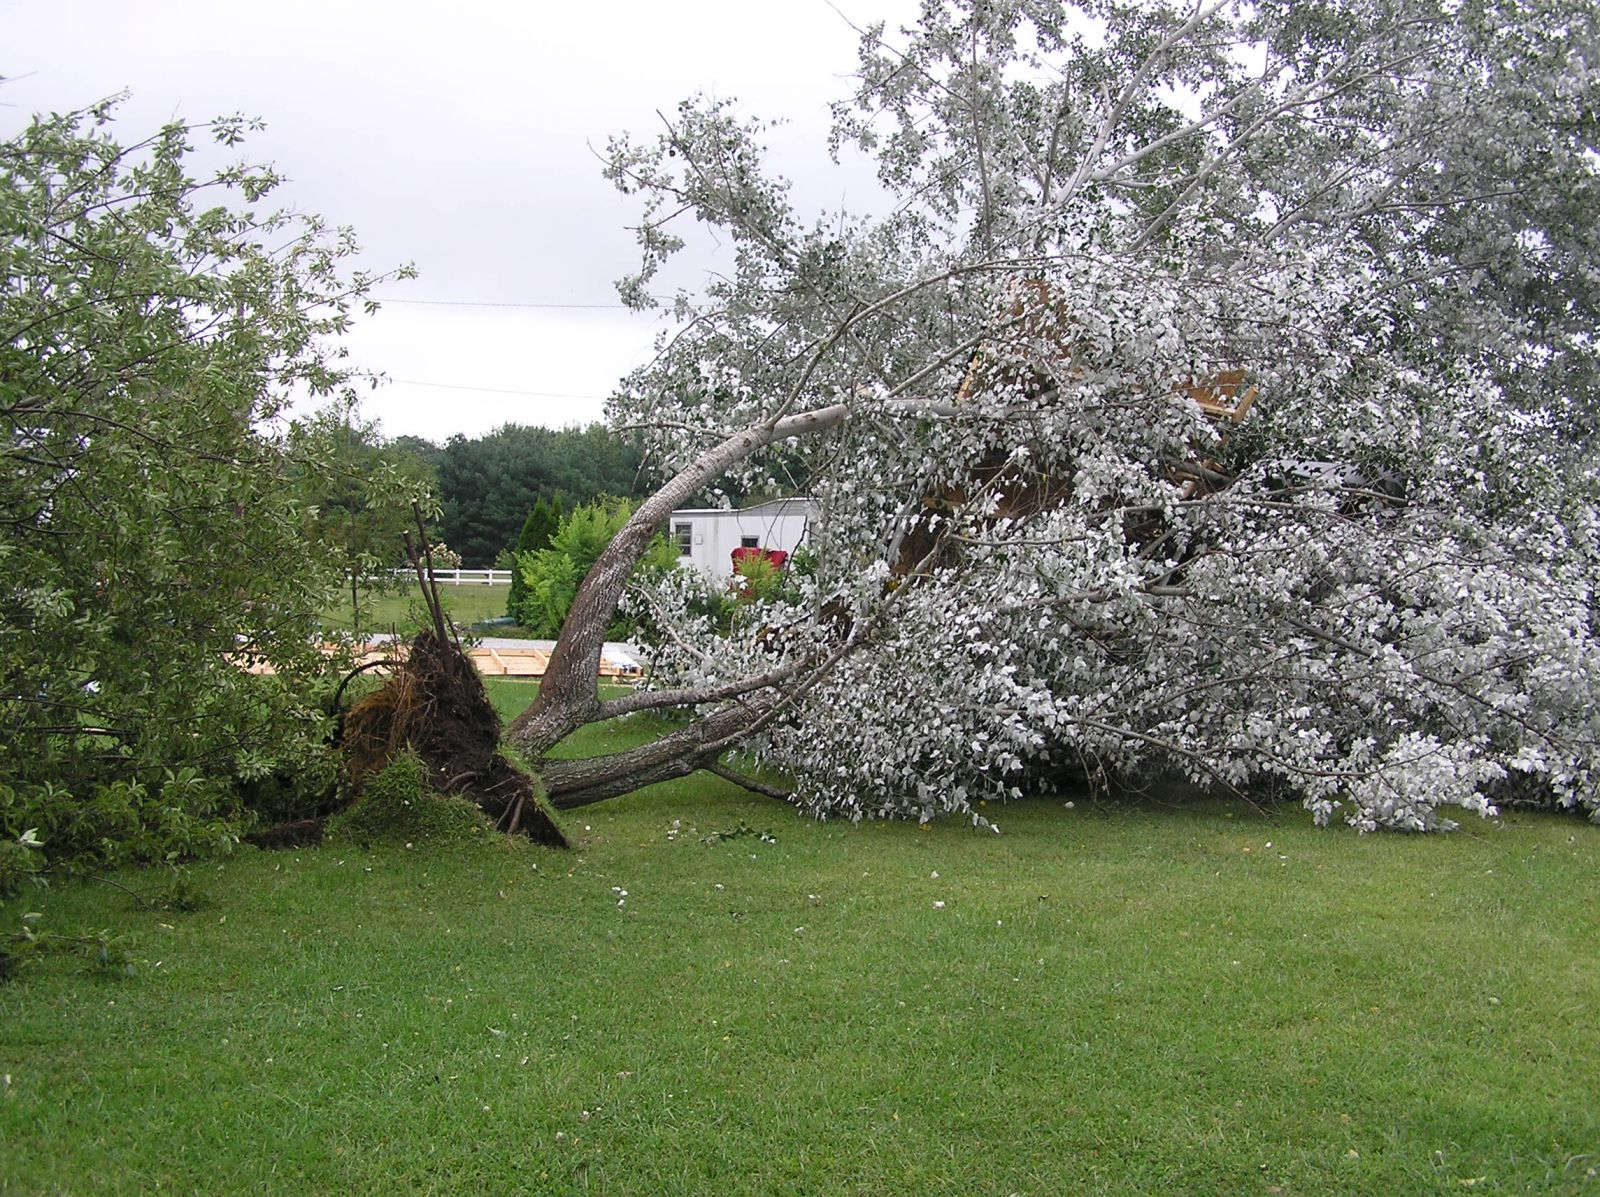 Another view of uprooted trees